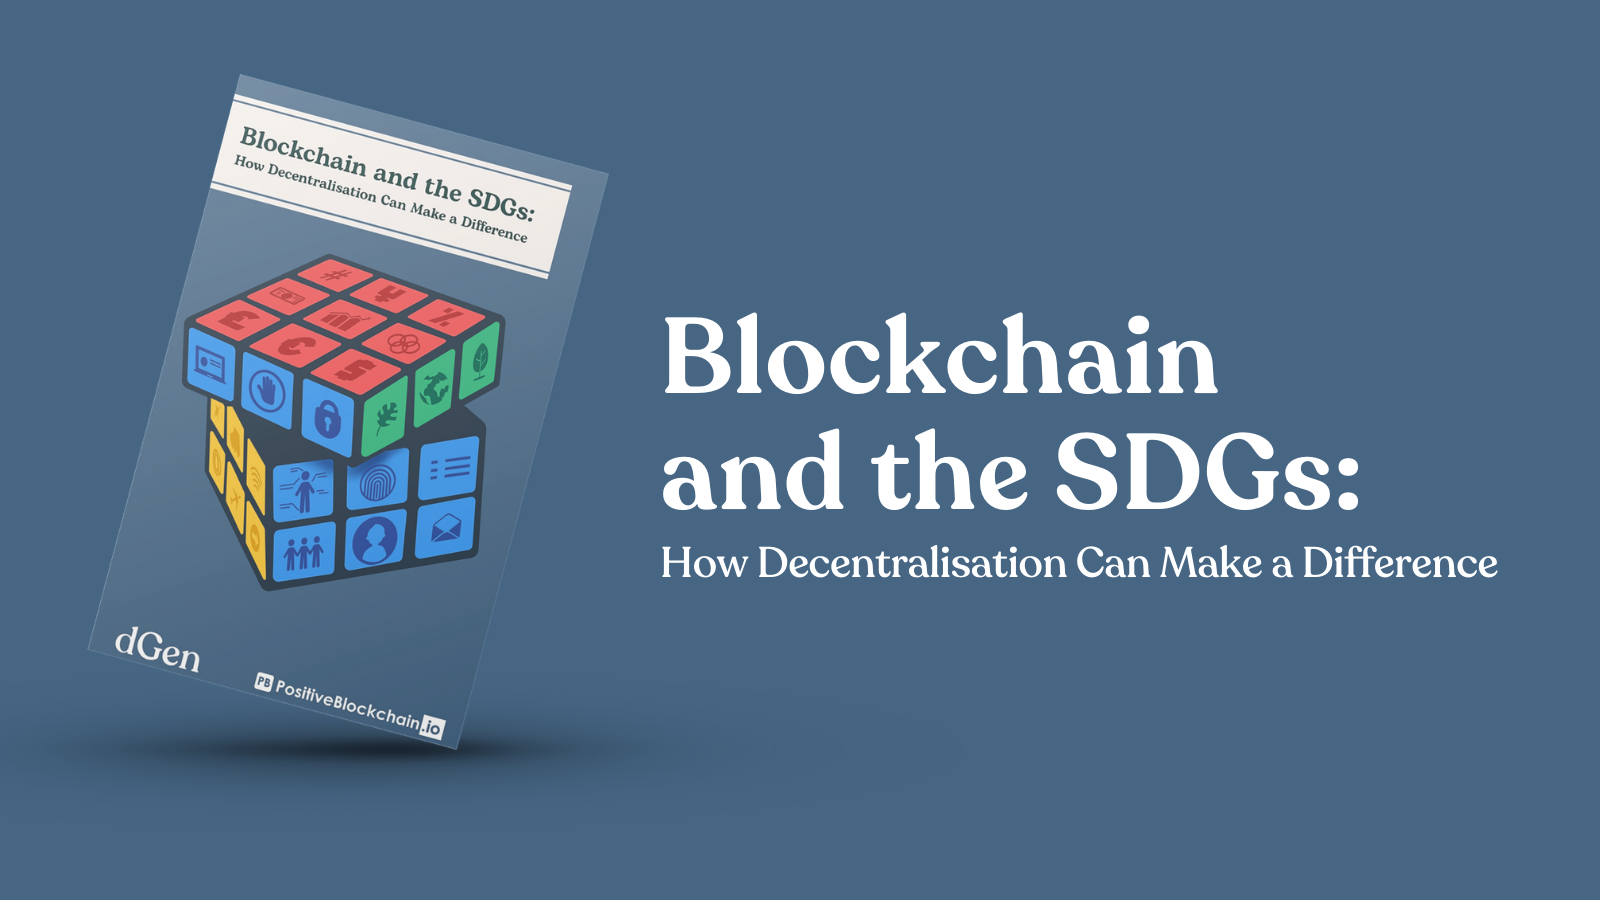 """Blue book cover, titled """"Blockchain & the SDGs: How Decentralisation Can Make a Difference"""" with Rubik's cube covered in SDG images and the dGen and PositiveBlockchain logos over blue background with same title and a blue and red blob."""